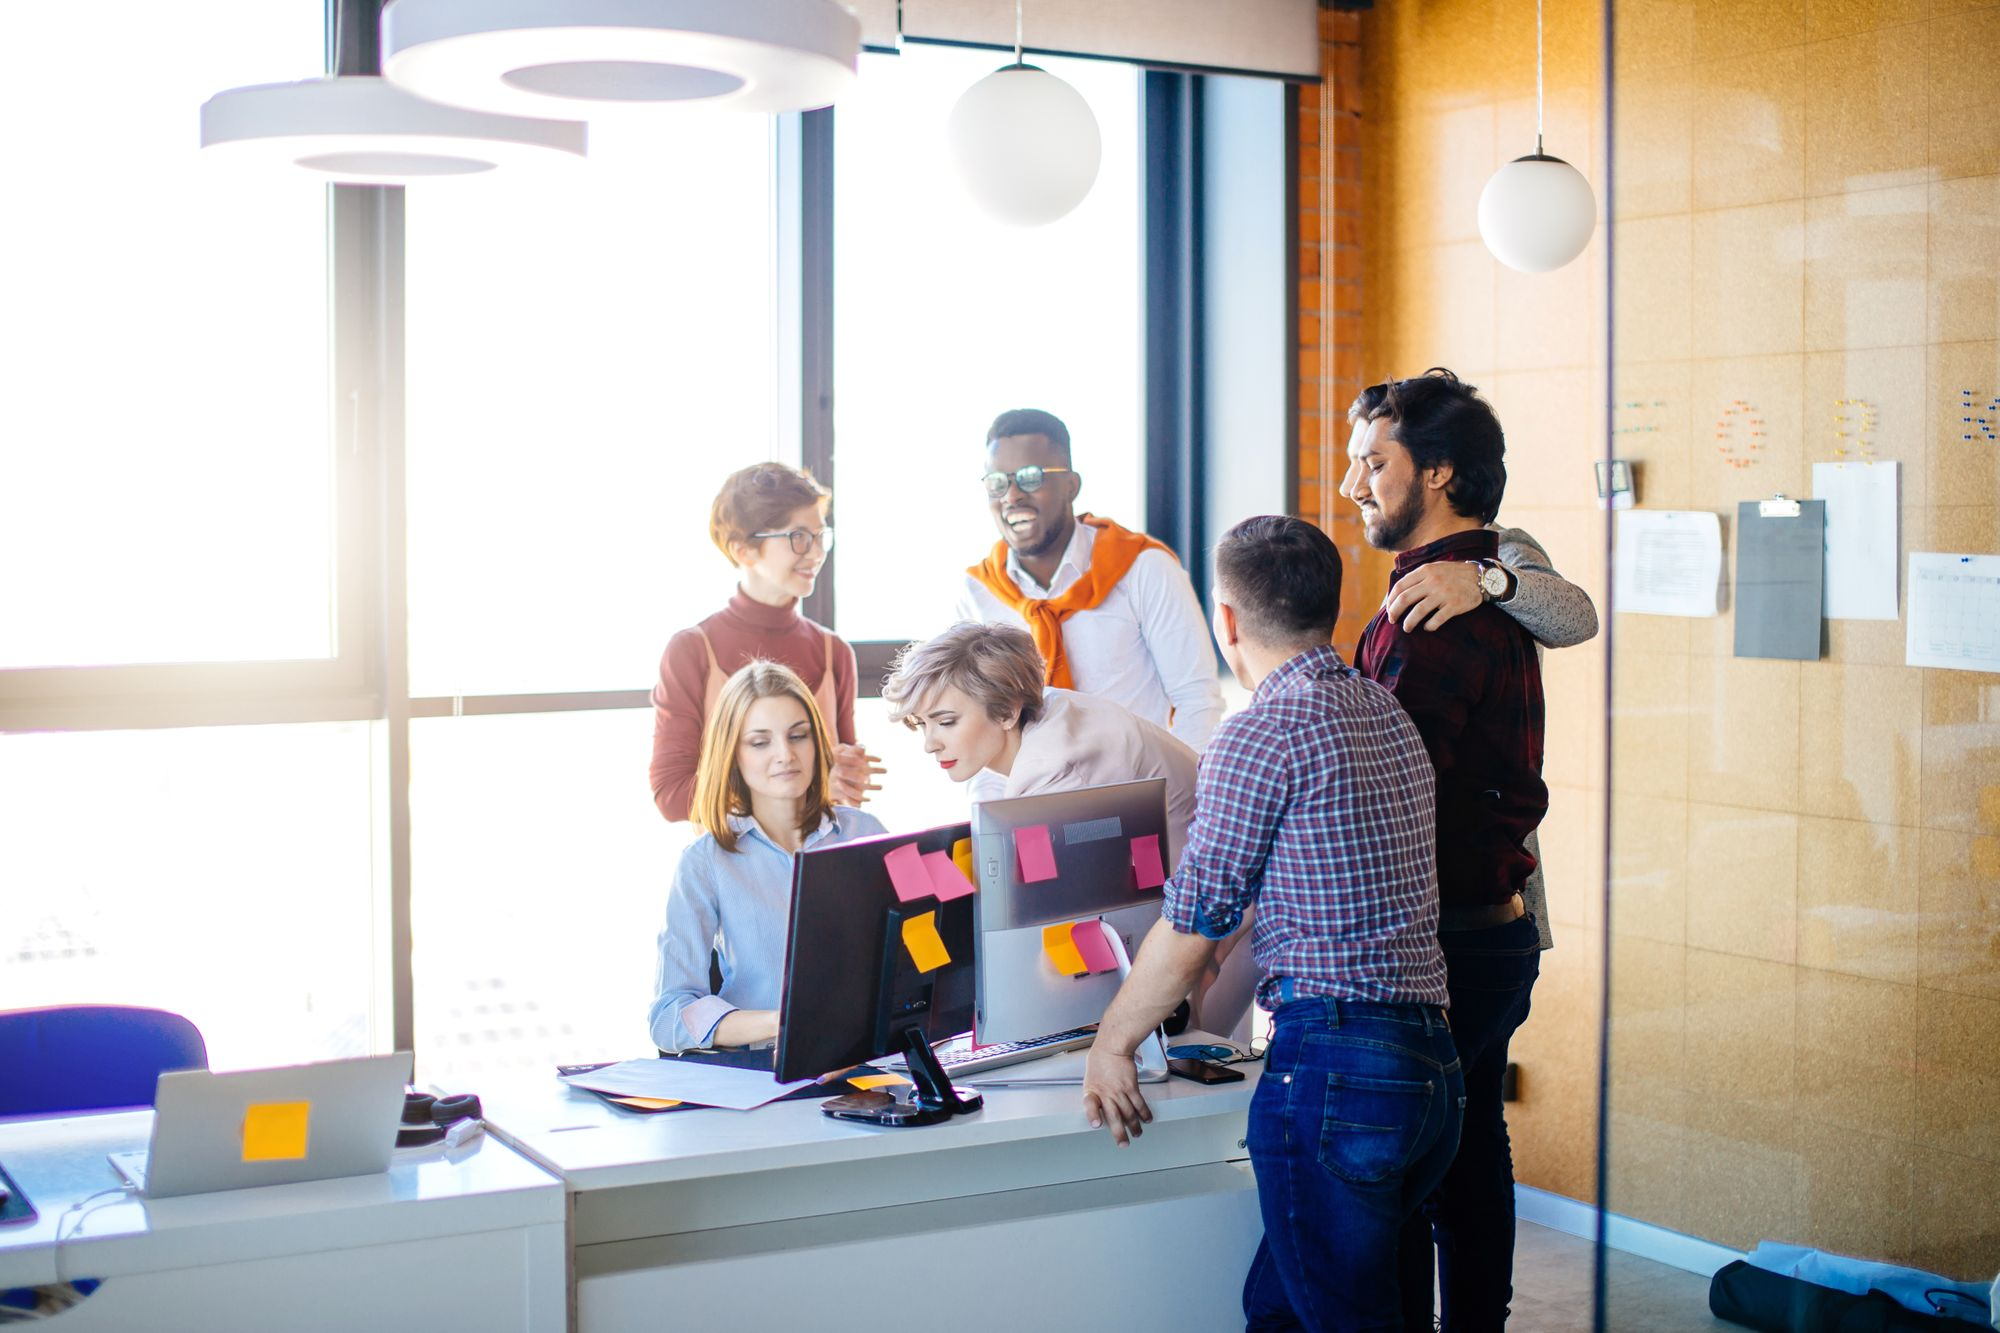 7 people on a team collaboration in scrum